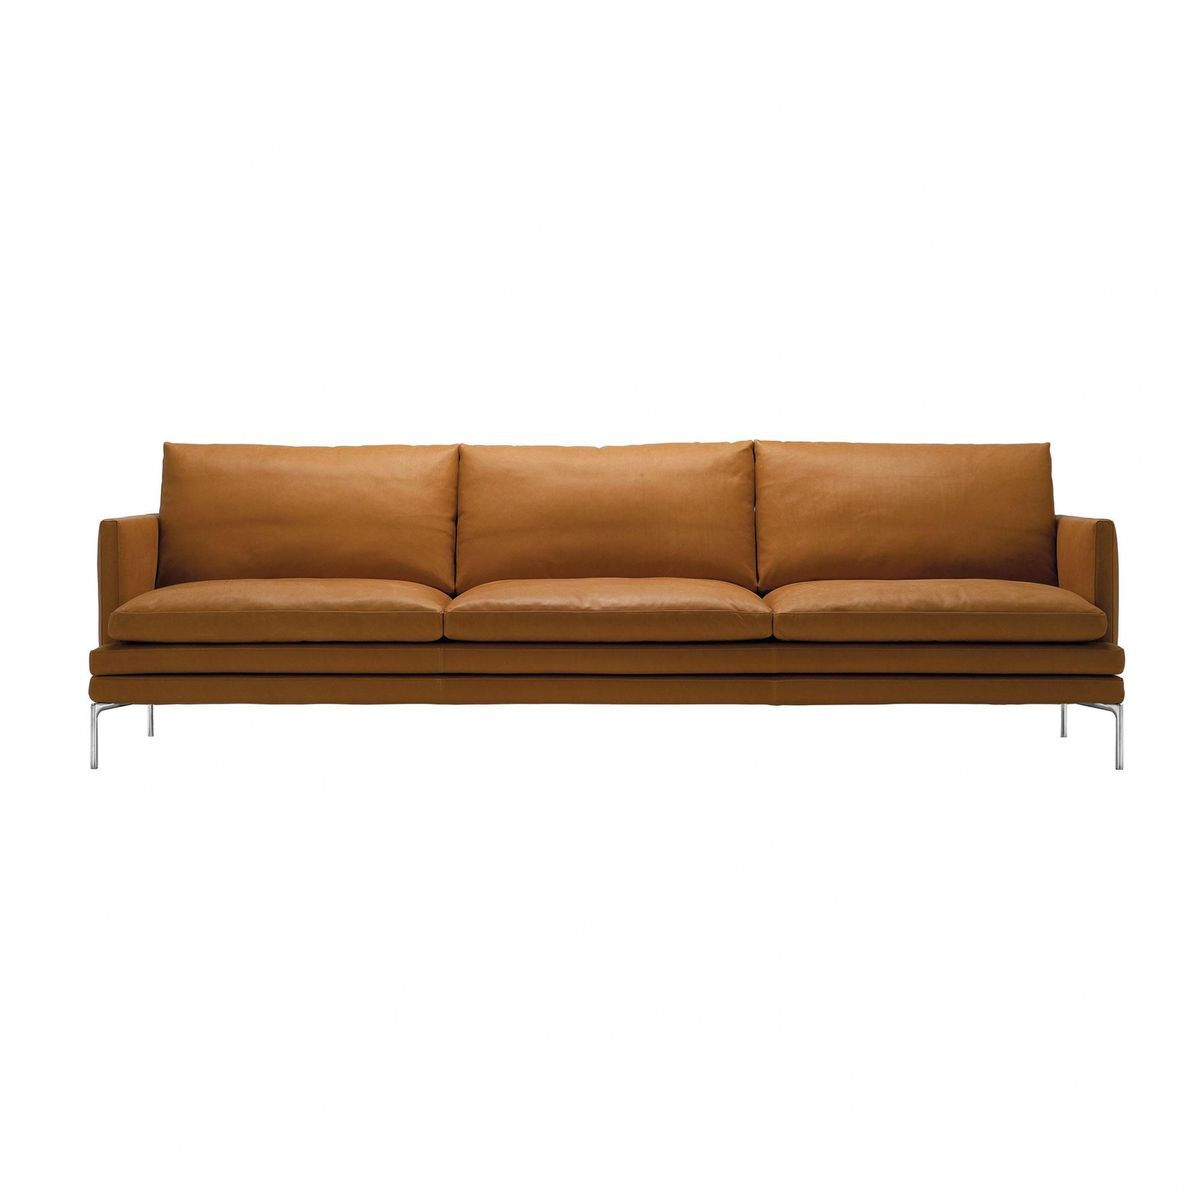 William 1330 3 Sitzer Sofa Sofa Design Best Leather Sofa